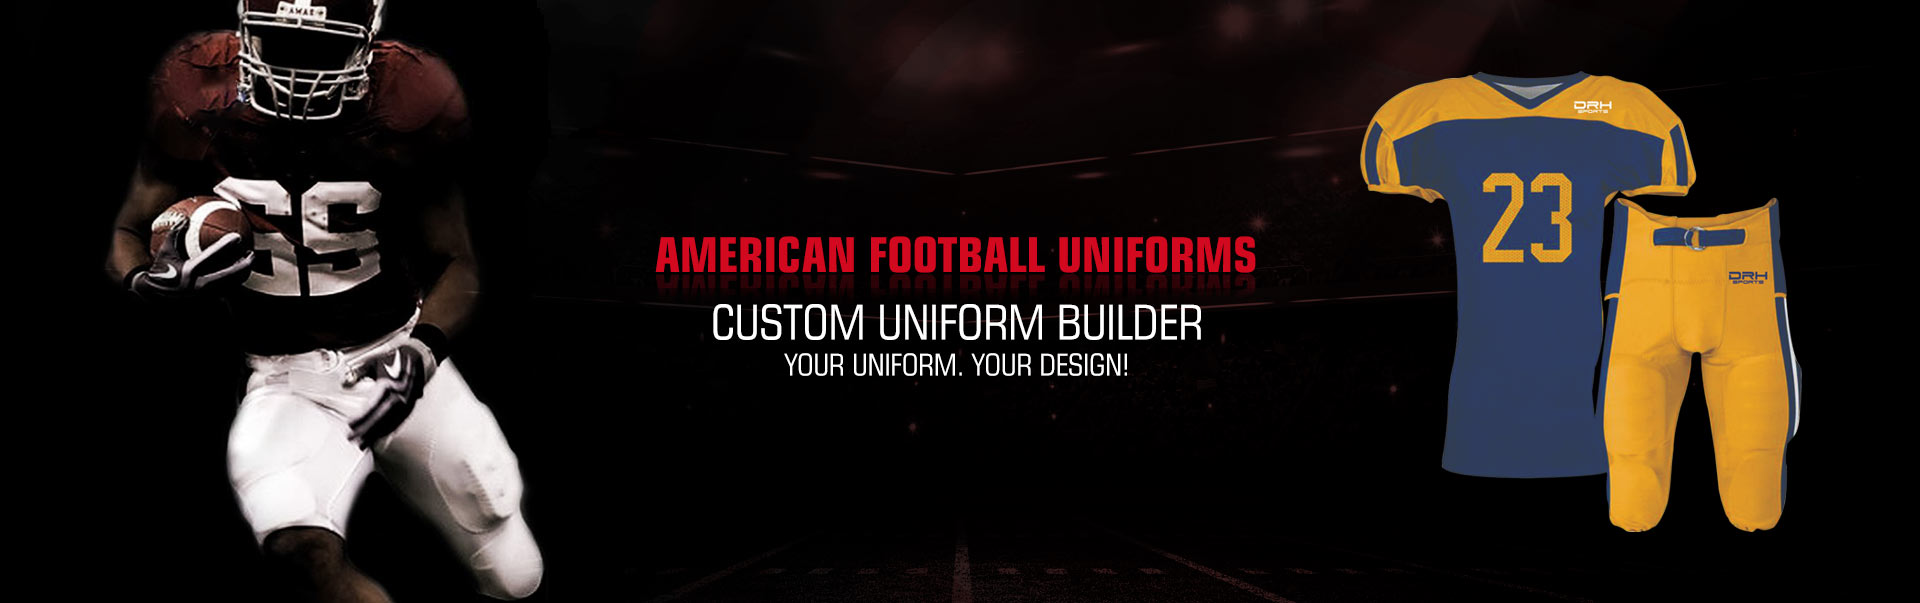 American Football Uniform Wholesaler, Suppliers in Lakeland